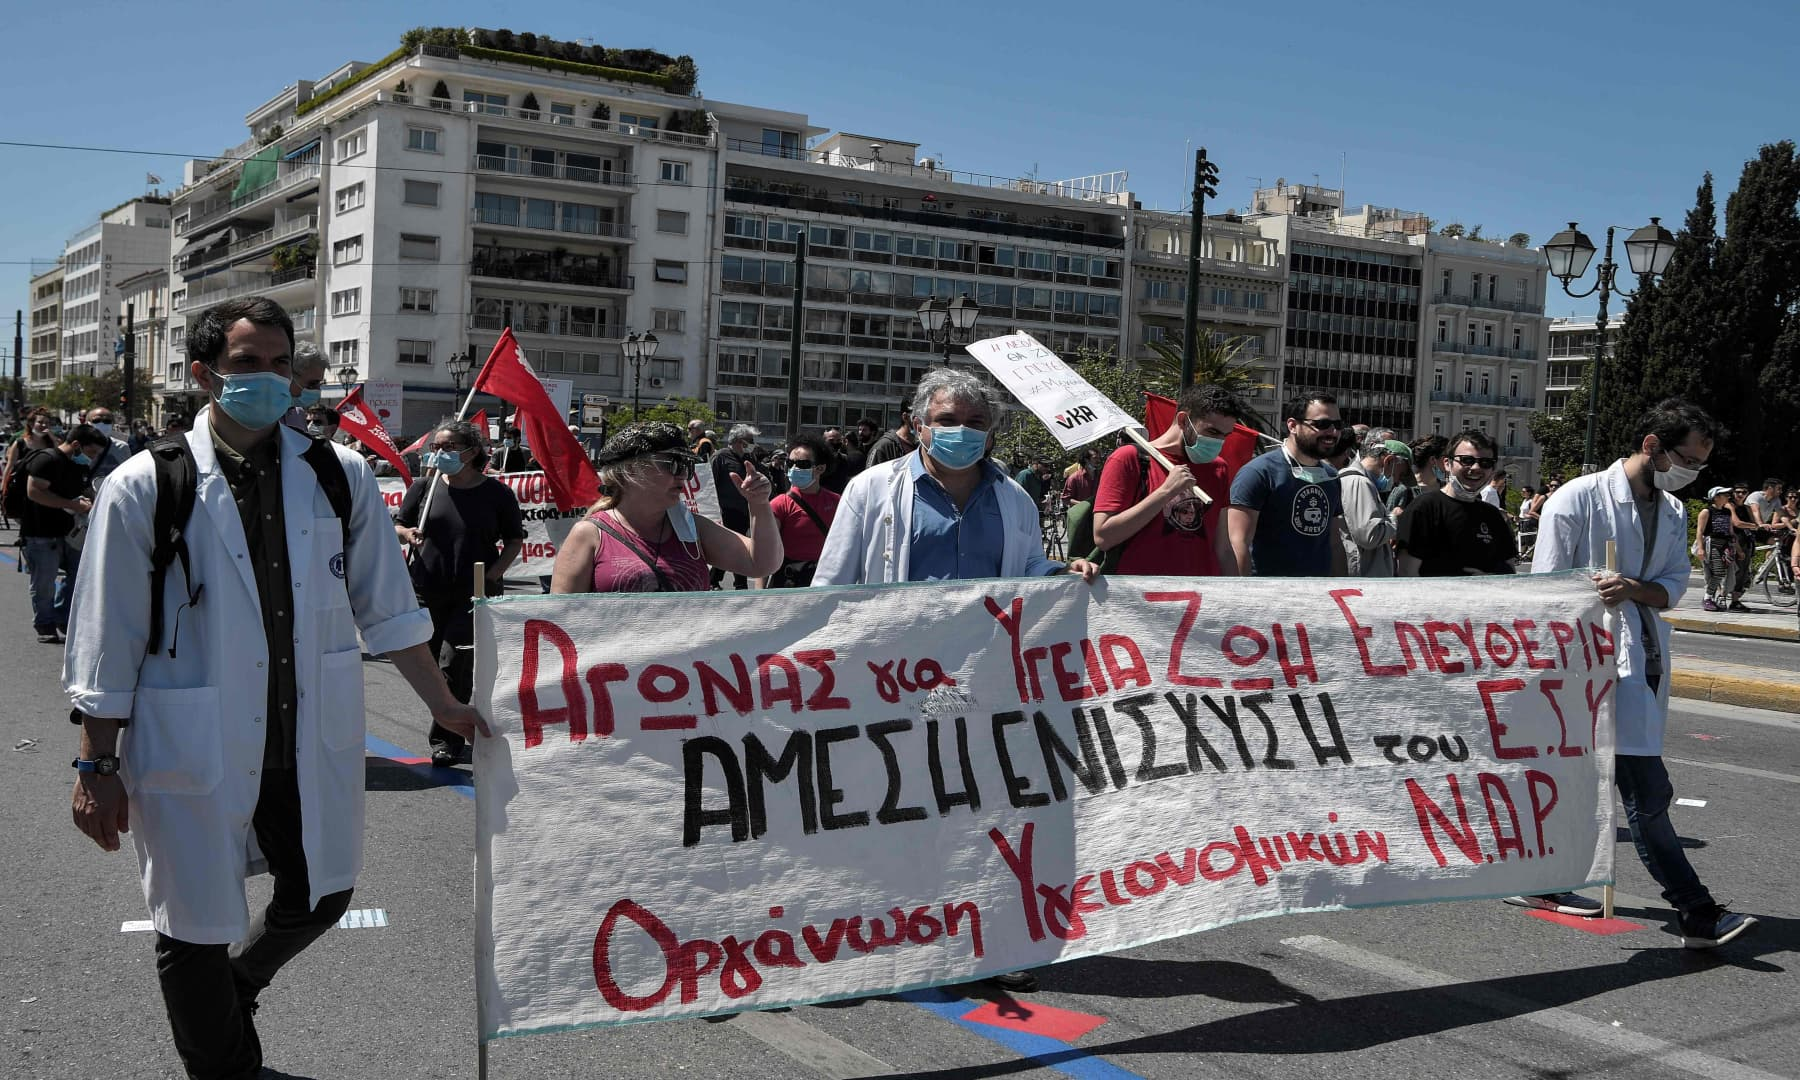 Doctors attend the Labour Day demonstration in Athens, Greece amid the country's lockdown to stem the spread of the Covid-19. — AFP